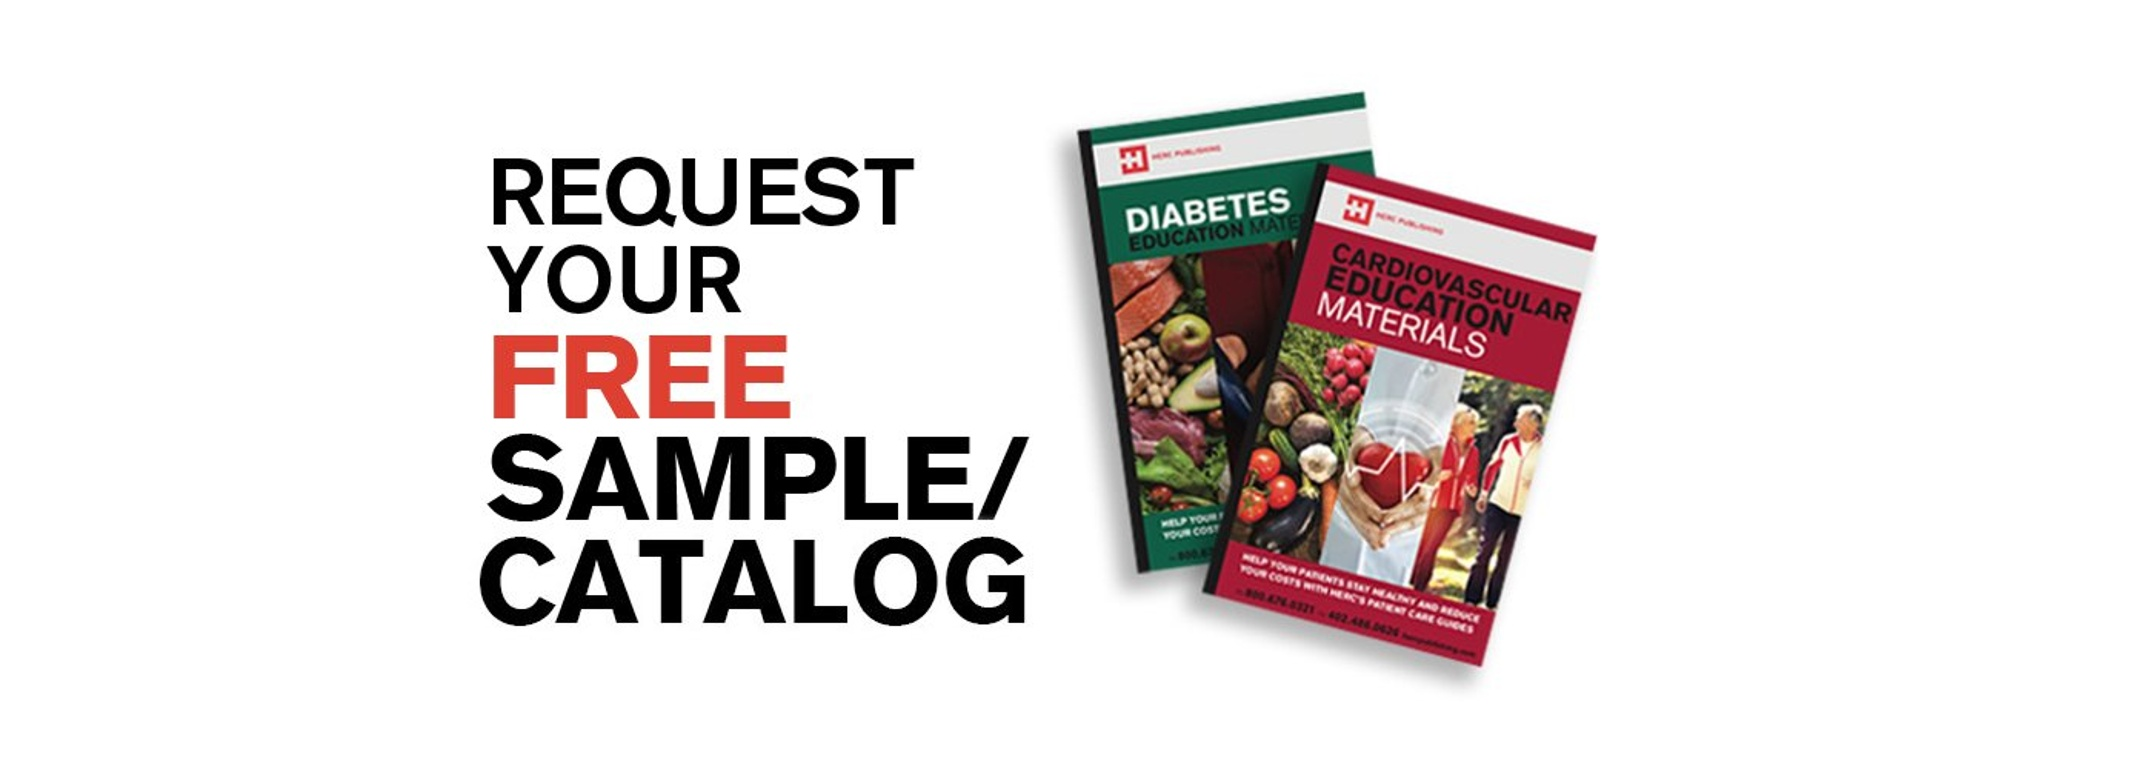 Request Your Free Sample/Catalog